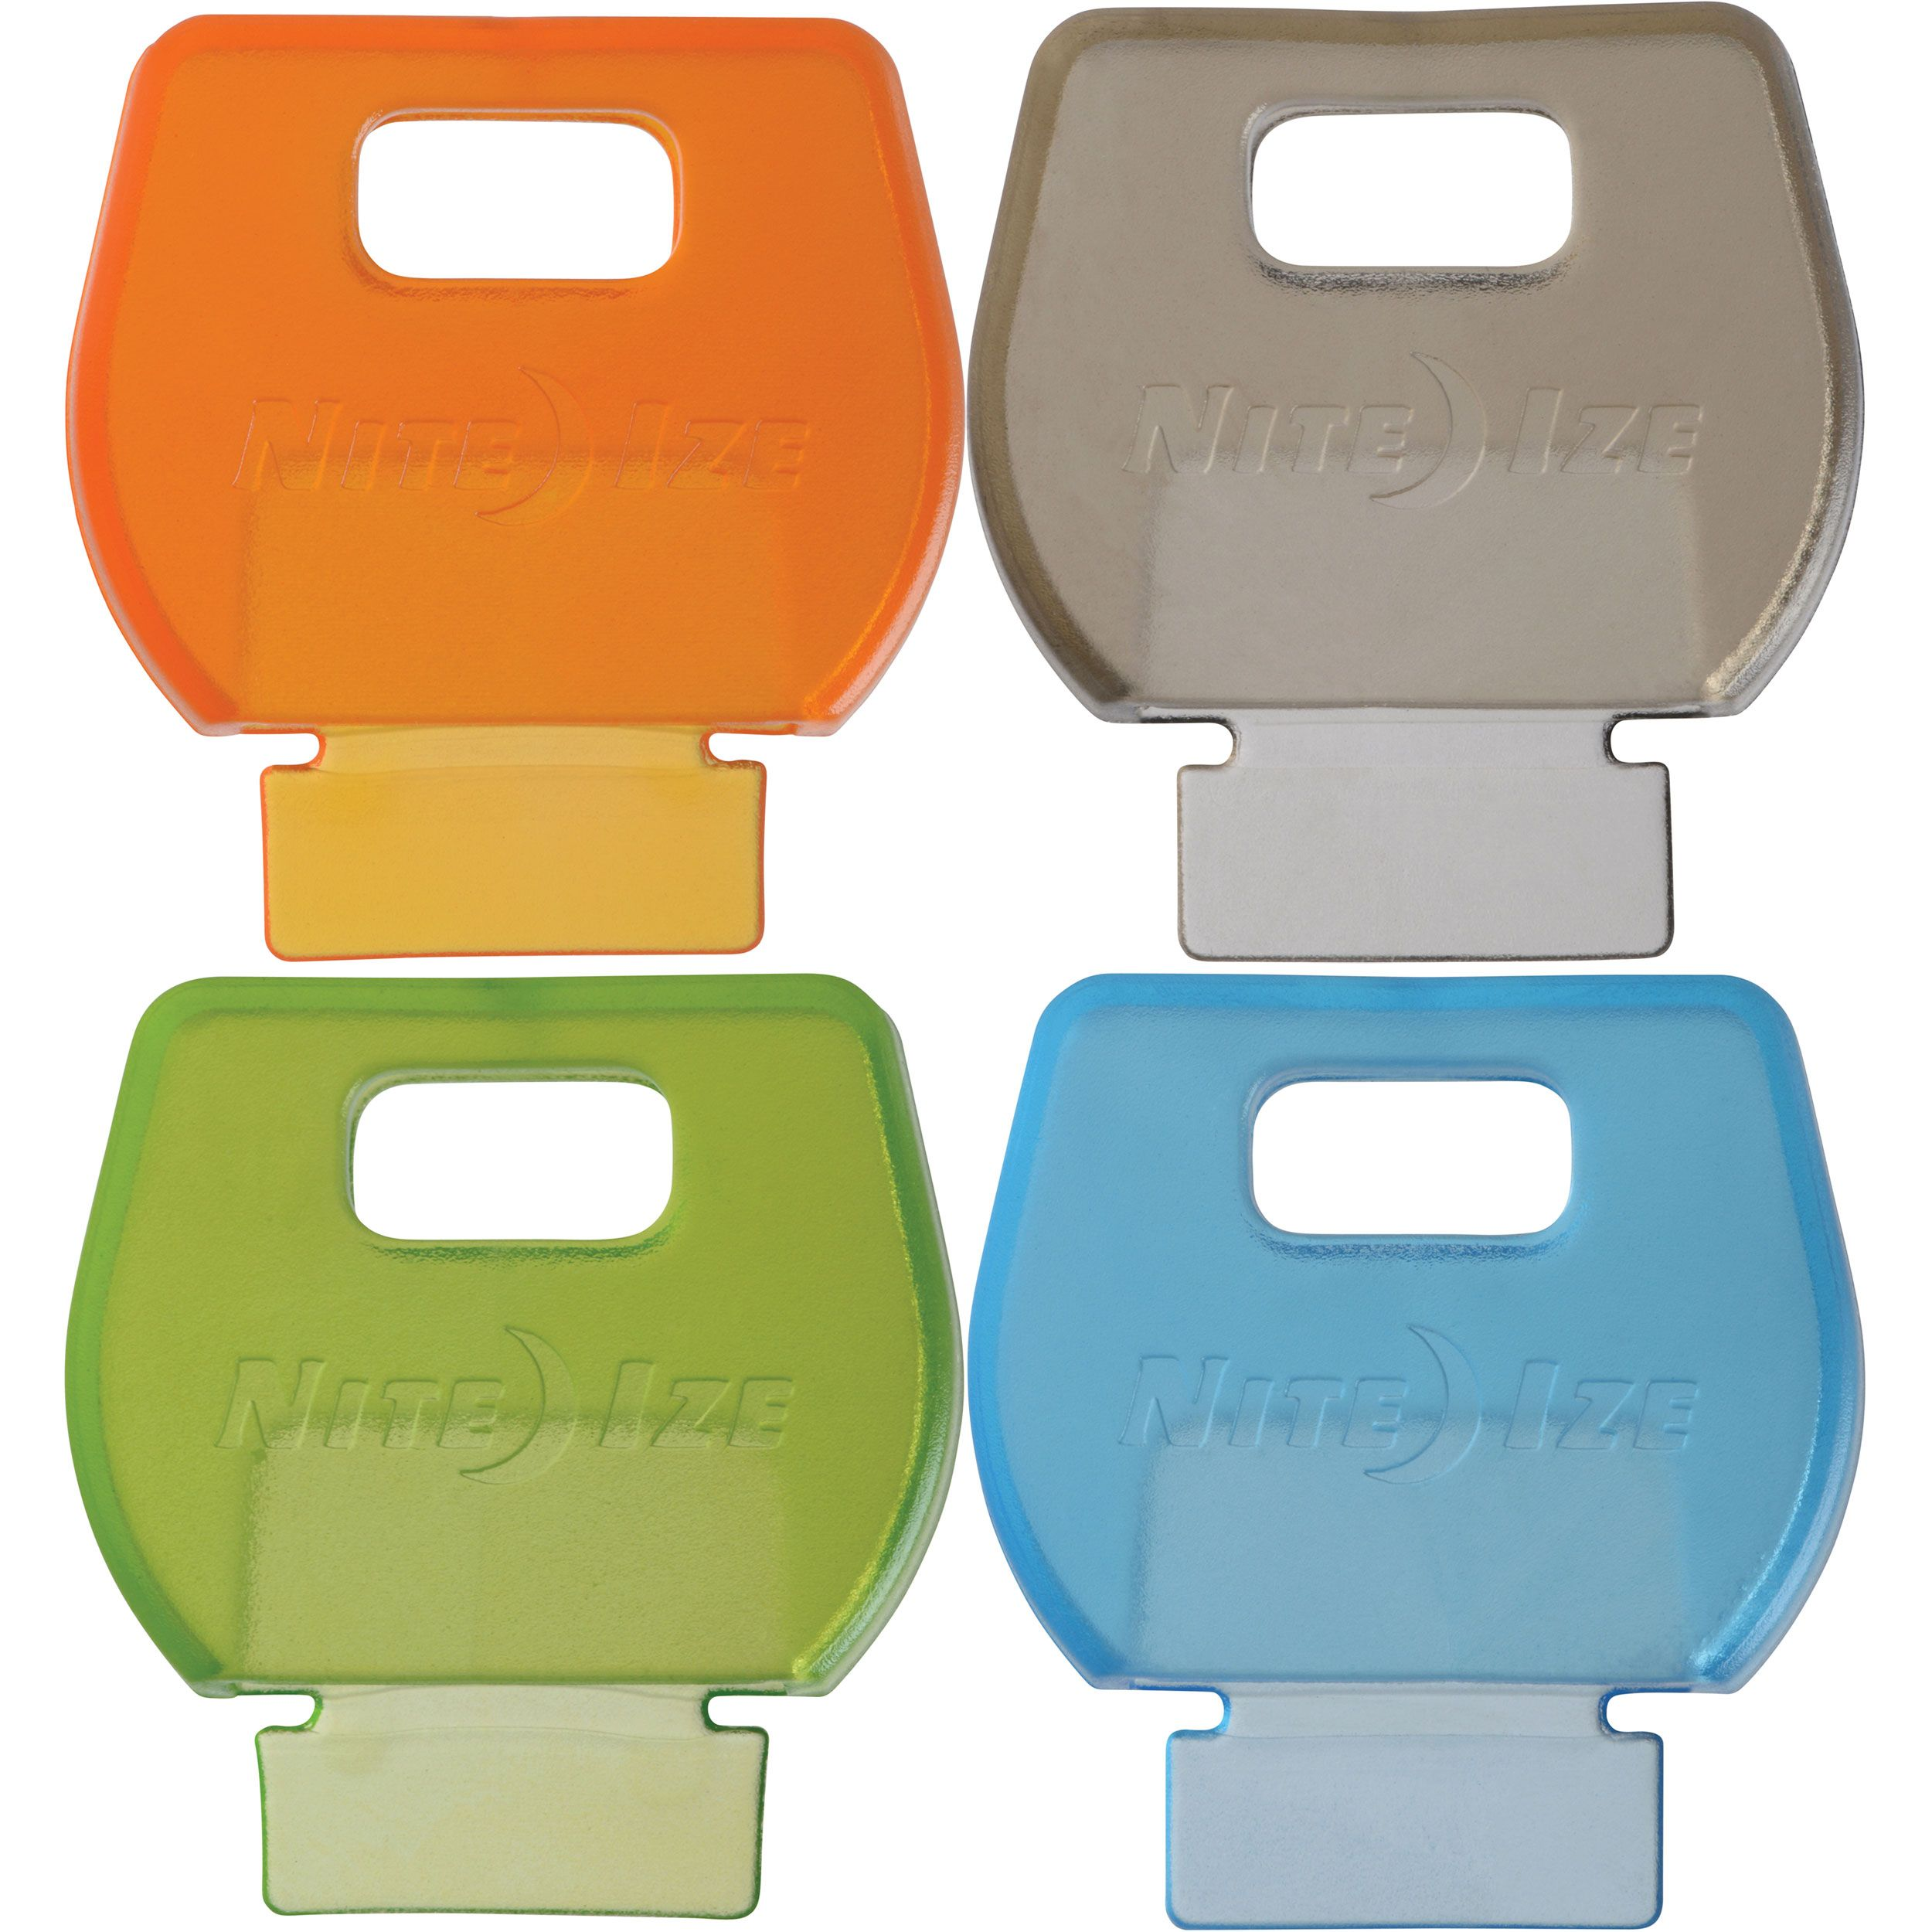 Nite Ize IdentiKey Covers 4 Pack, Assorted Colors